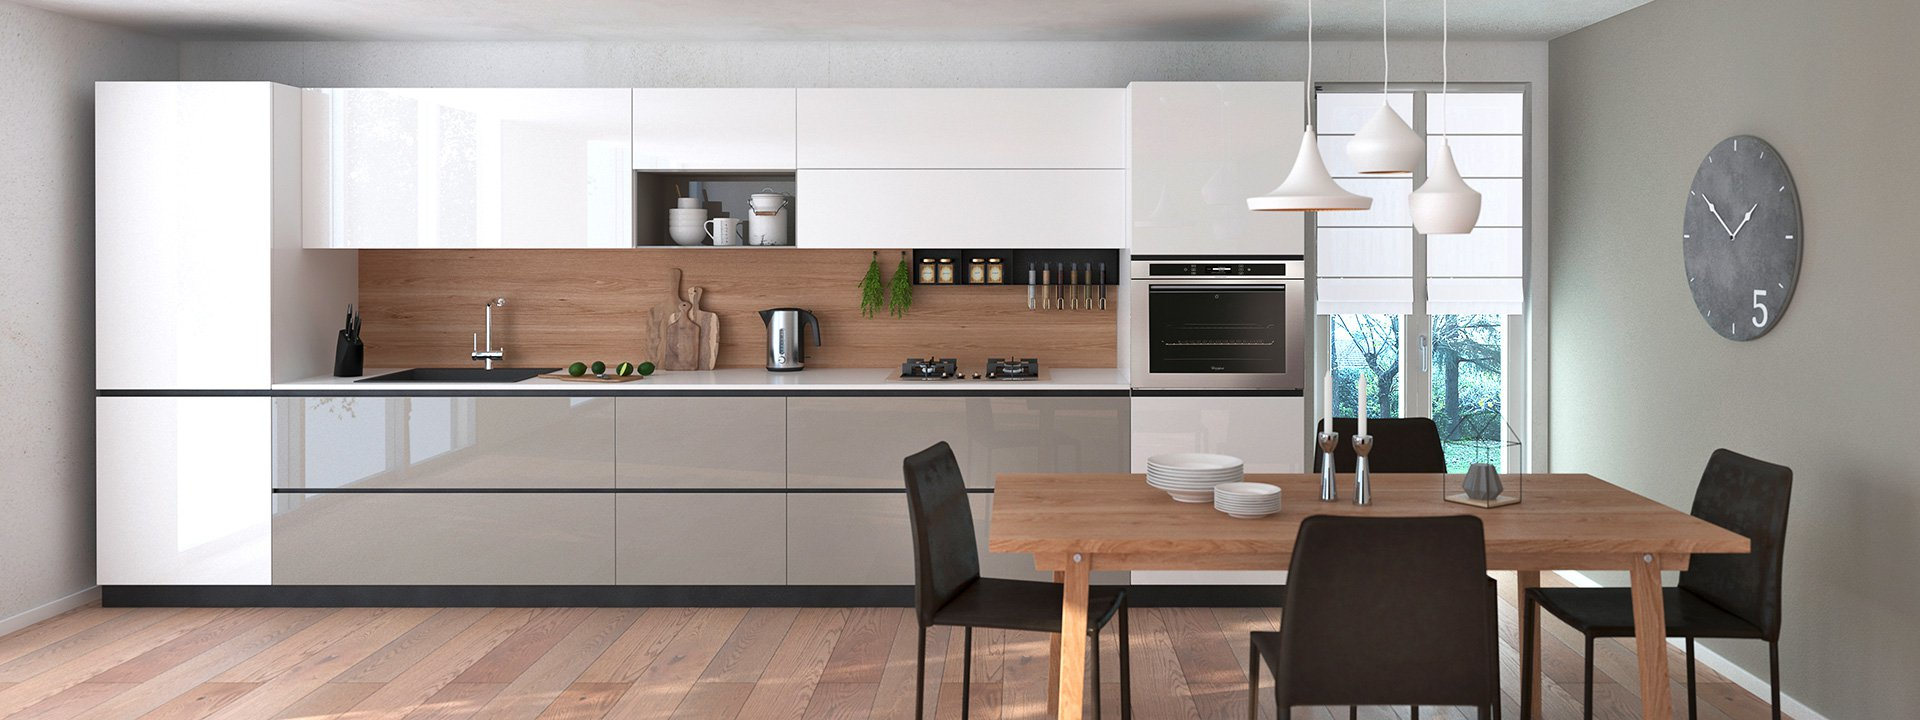 Rinnovo ante e top cucine Second Life Kitchen